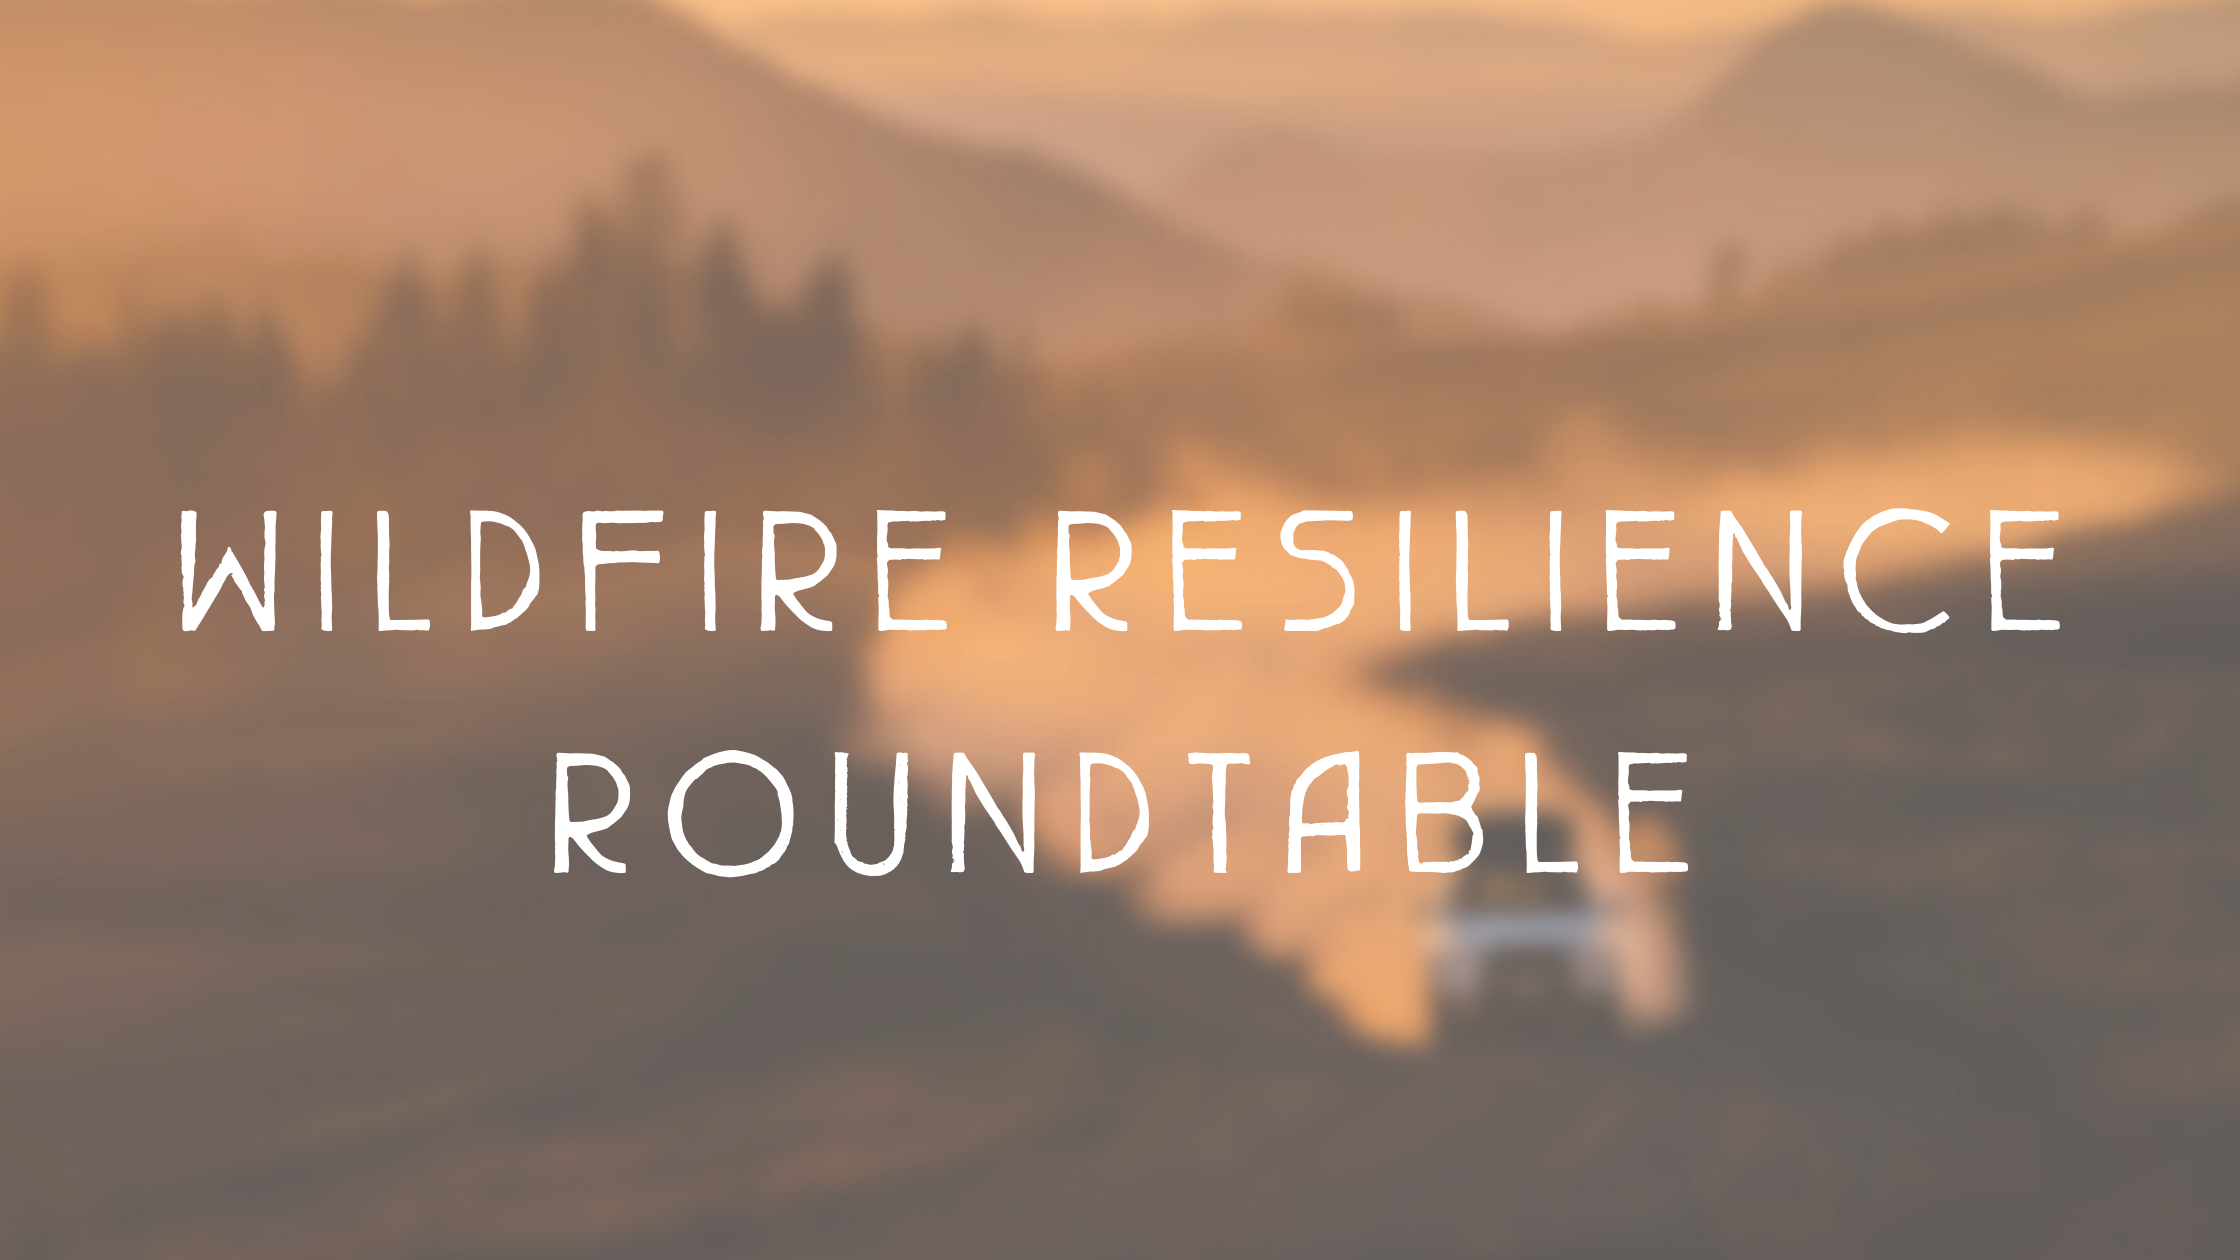 Wildfire Resilience Roundtable